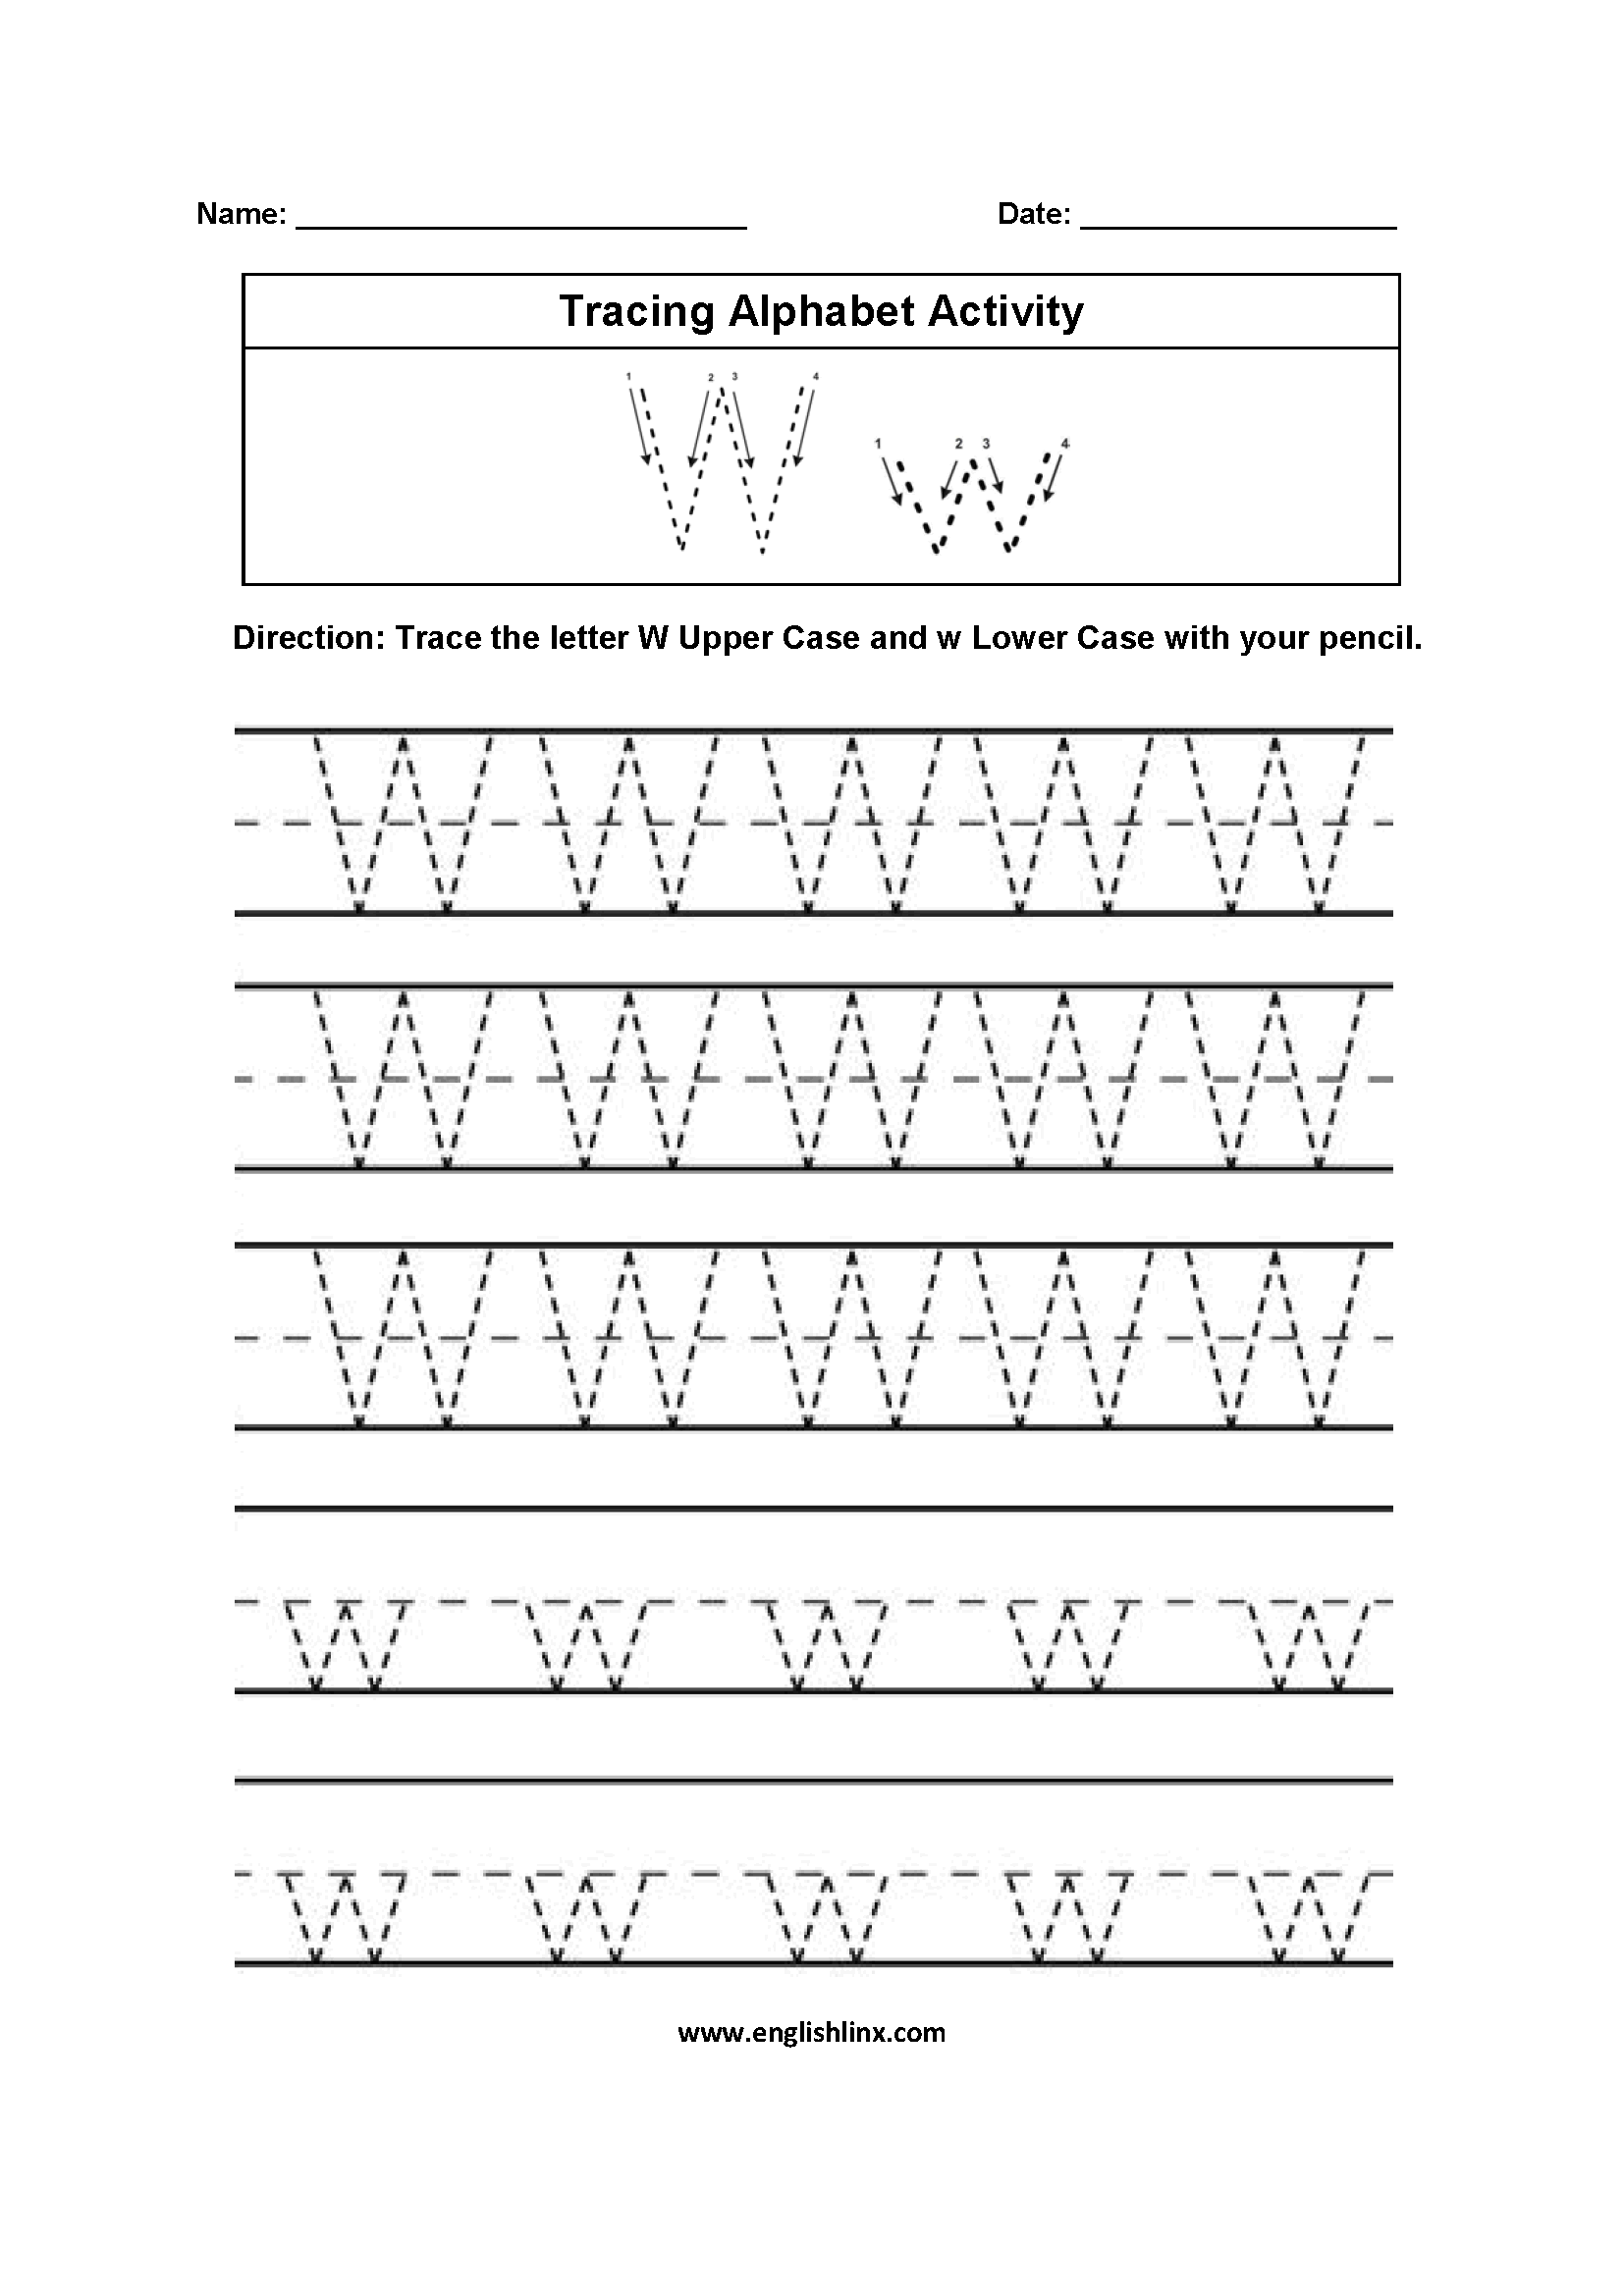 Letter W Tracing Alphabet Worksheets Tracing Worksheets Preschool Alphabet Worksheets Name Tracing Worksheets [ 2339 x 1654 Pixel ]